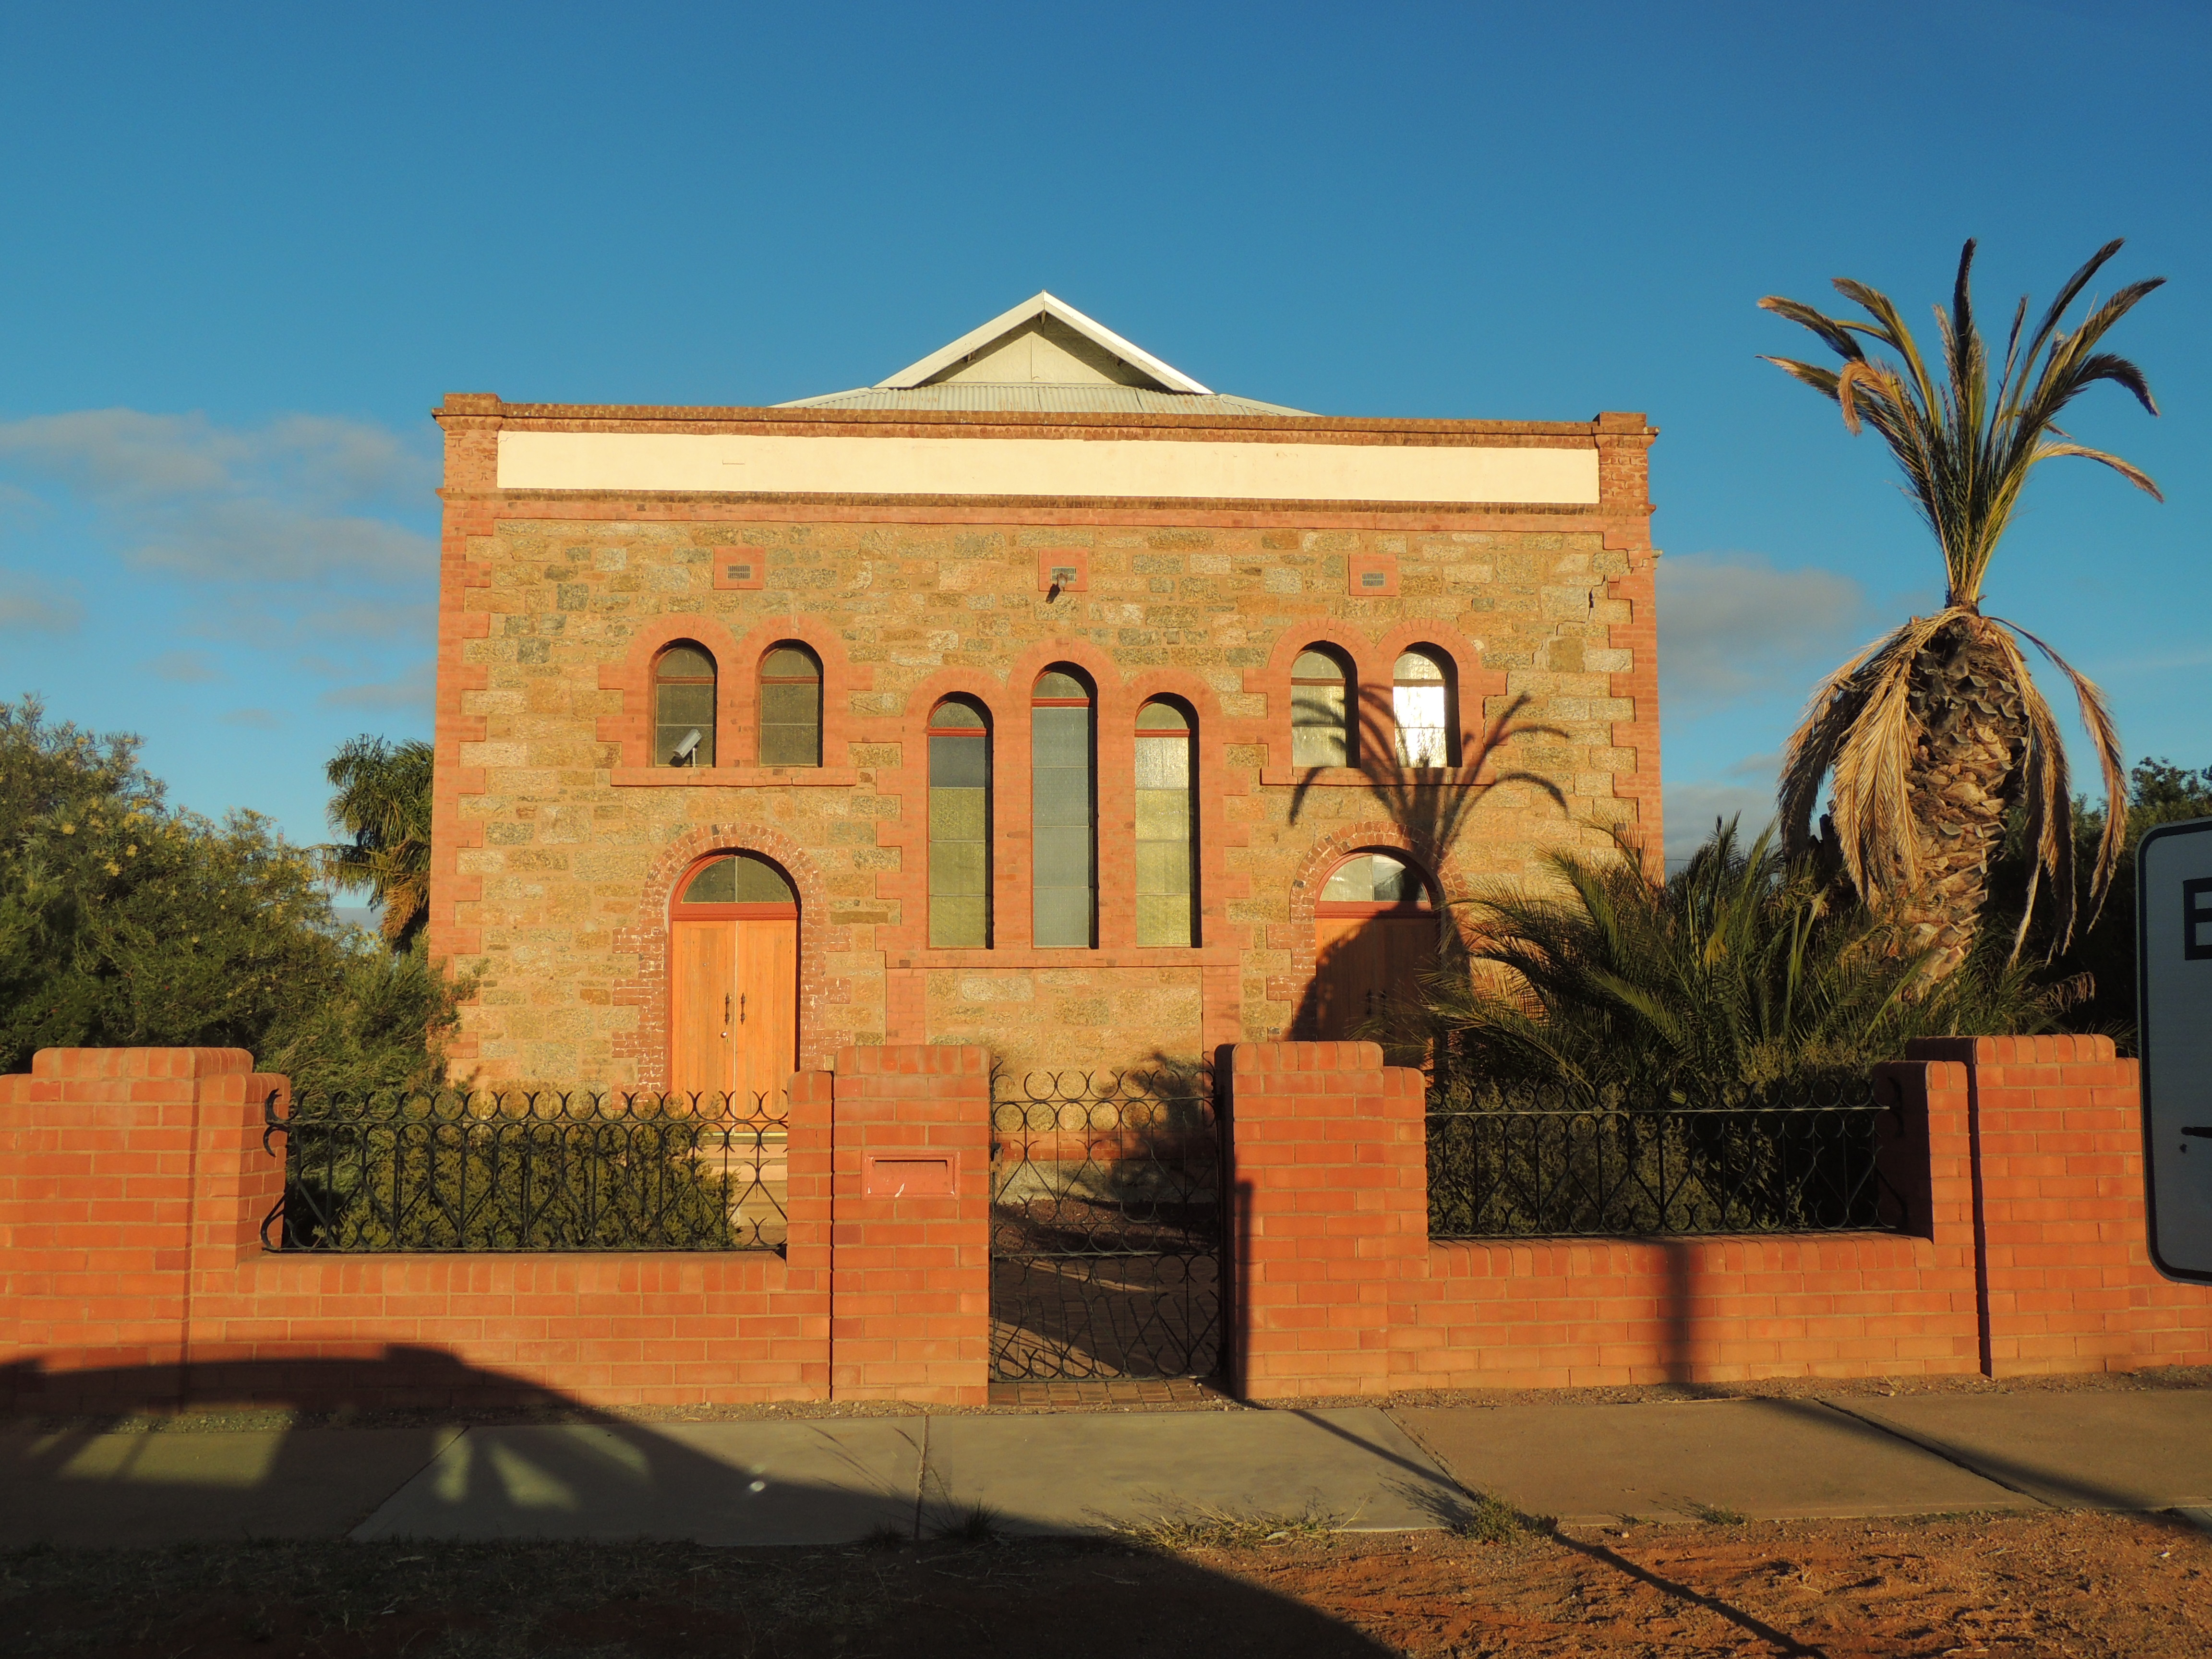 This the old convent, where we stayed.